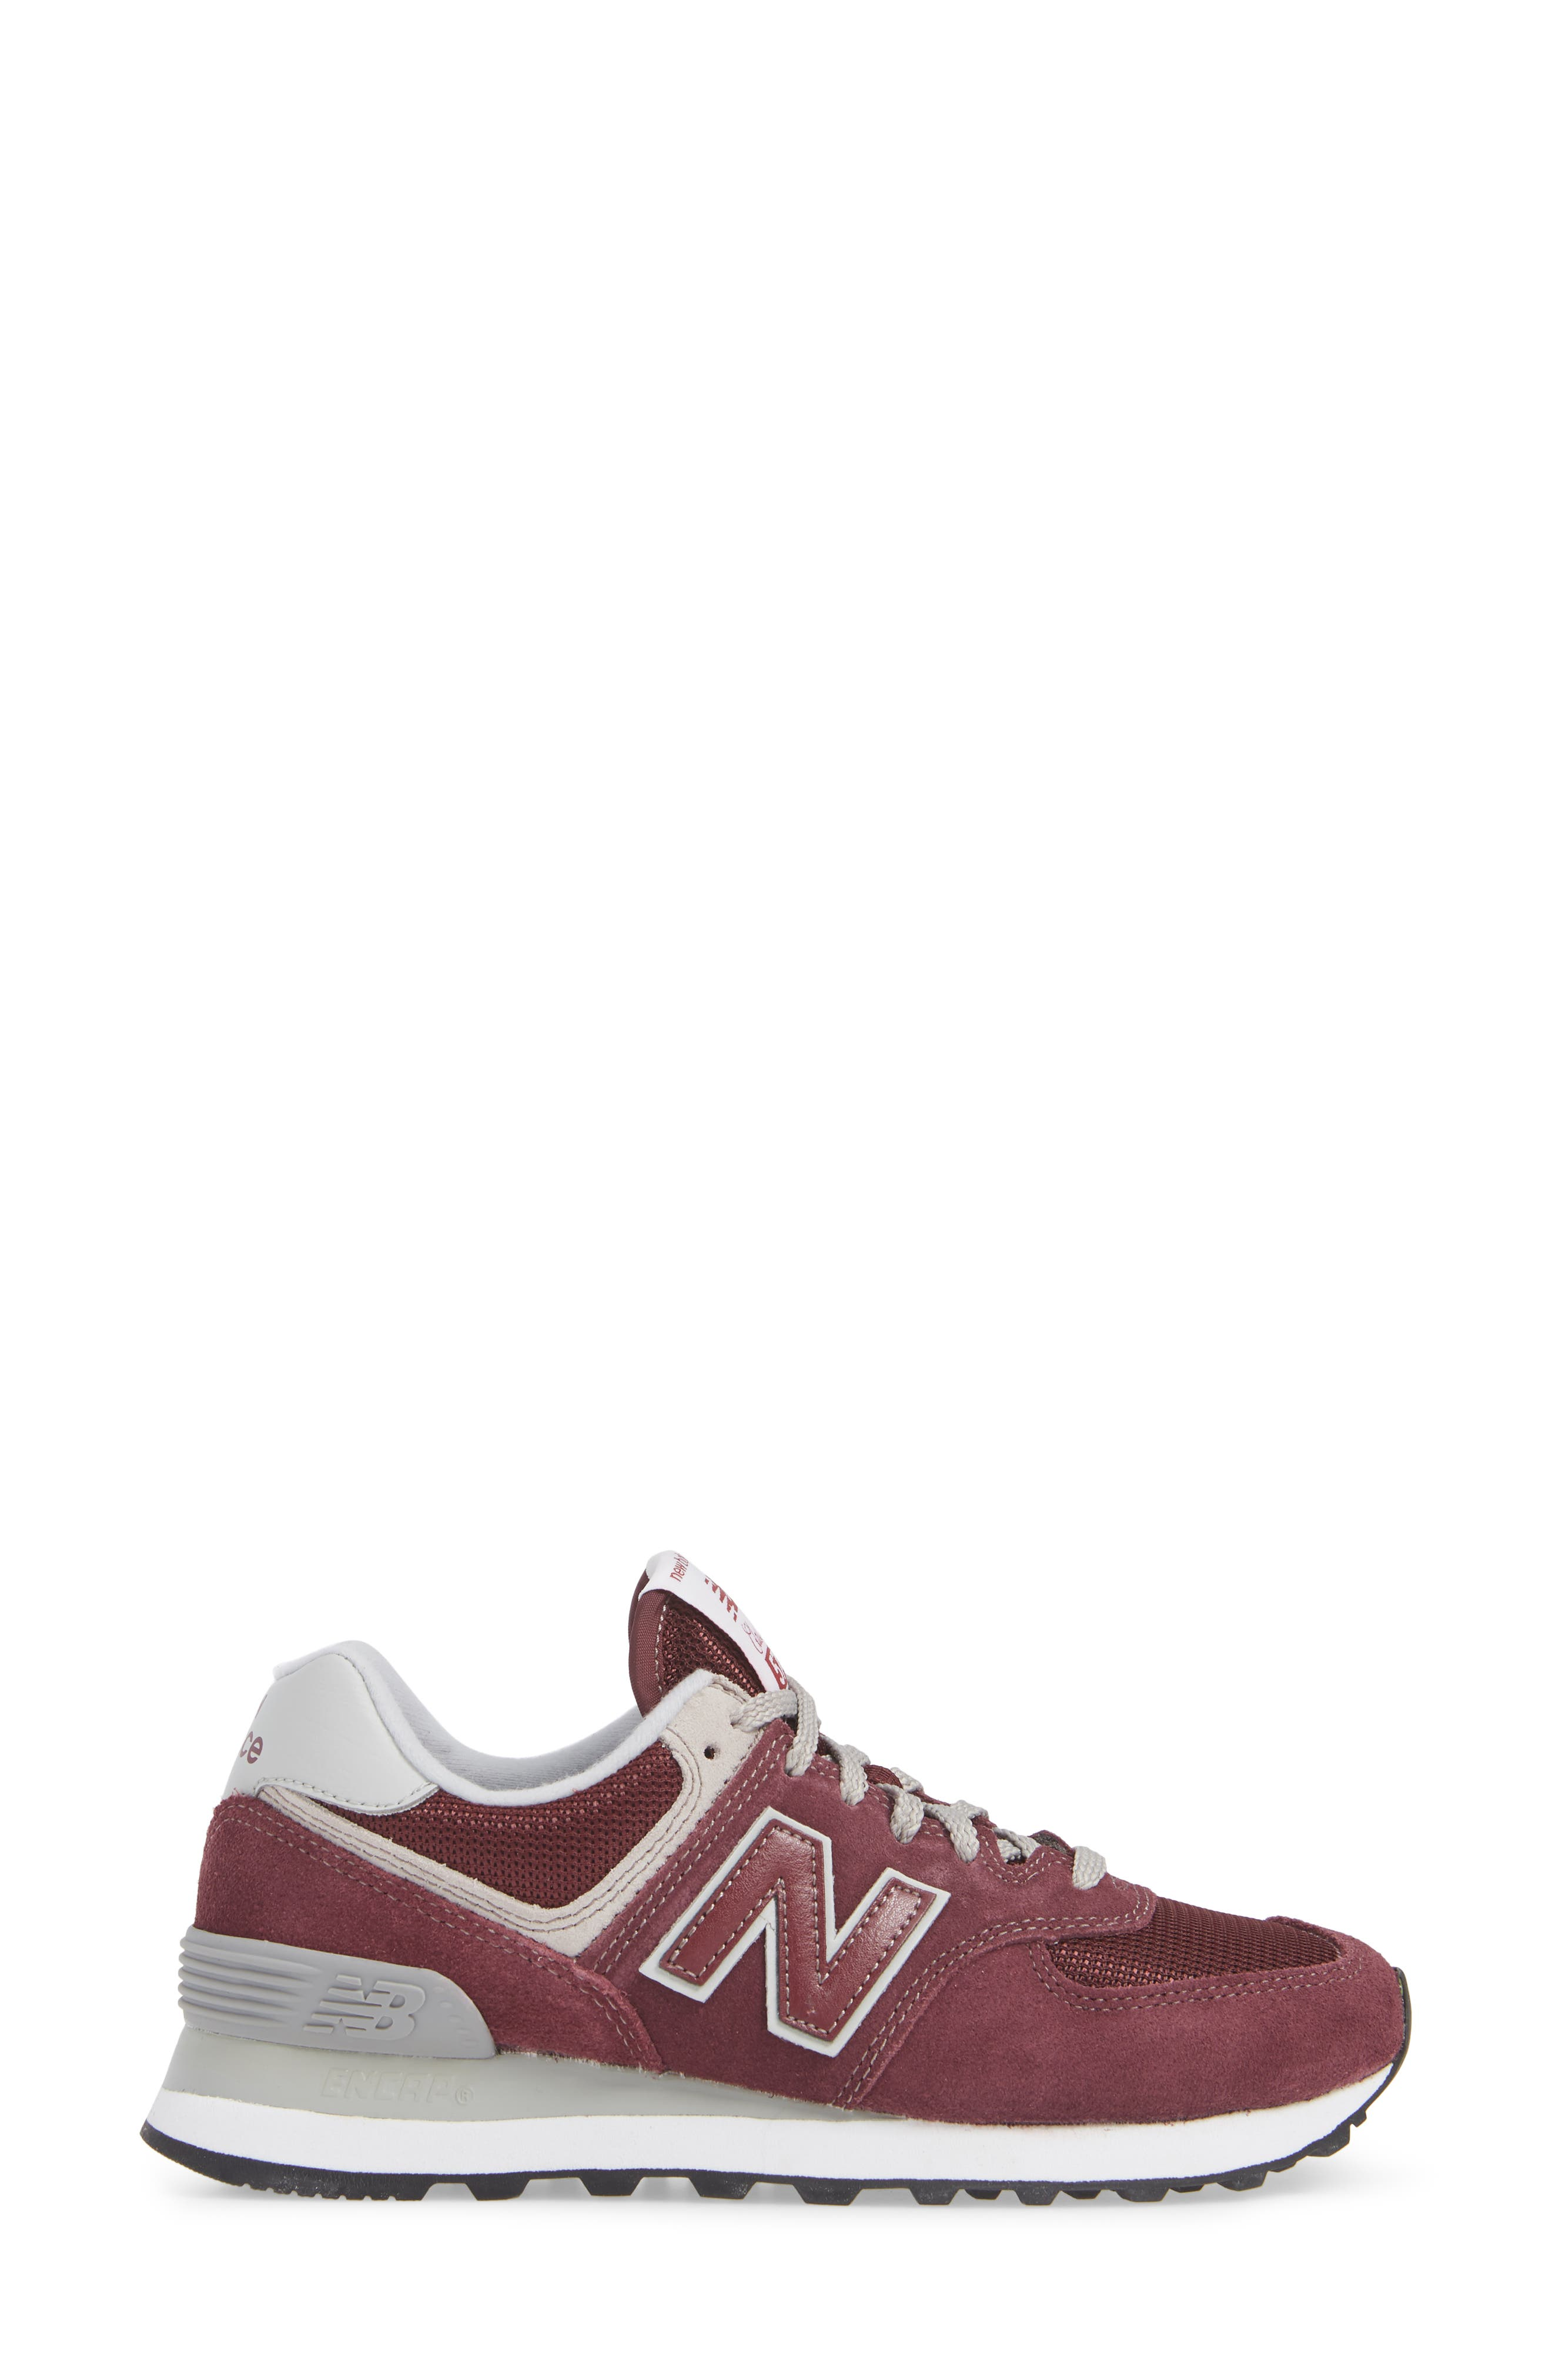 '574' Sneaker,                             Alternate thumbnail 3, color,                             BURGUNDY